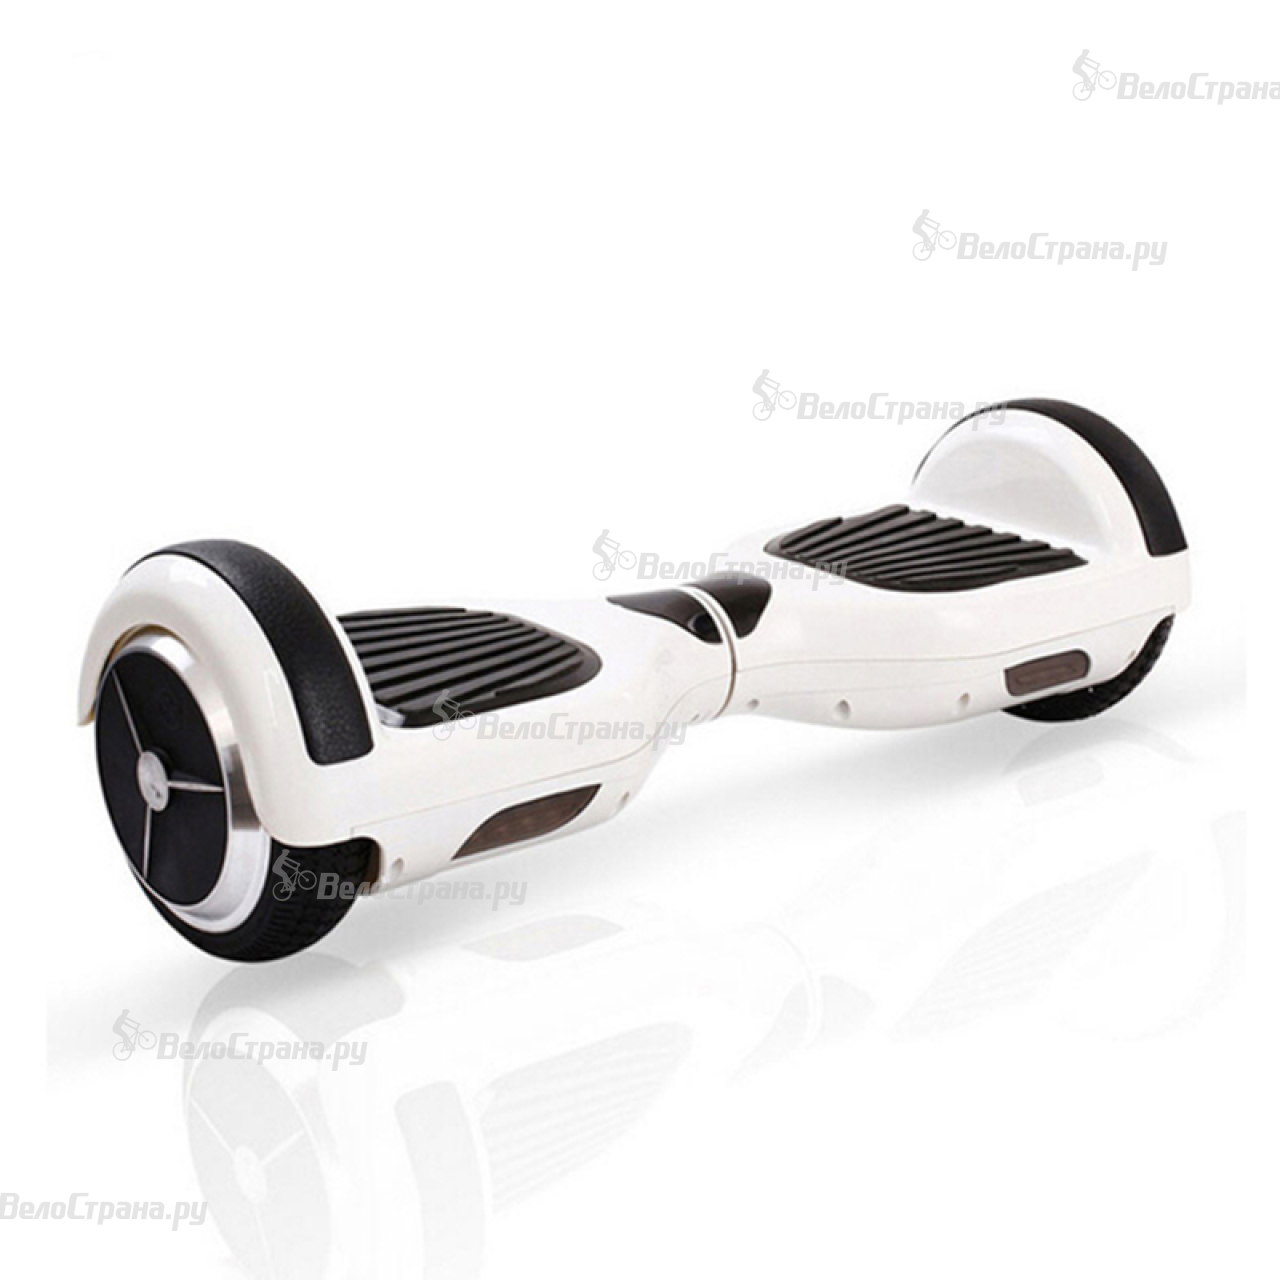 Smart Balance мини-сегвей Wheel 6 5 adult electric scooter hoverboard skateboard overboard smart balance skateboard balance board giroskuter or oxboard